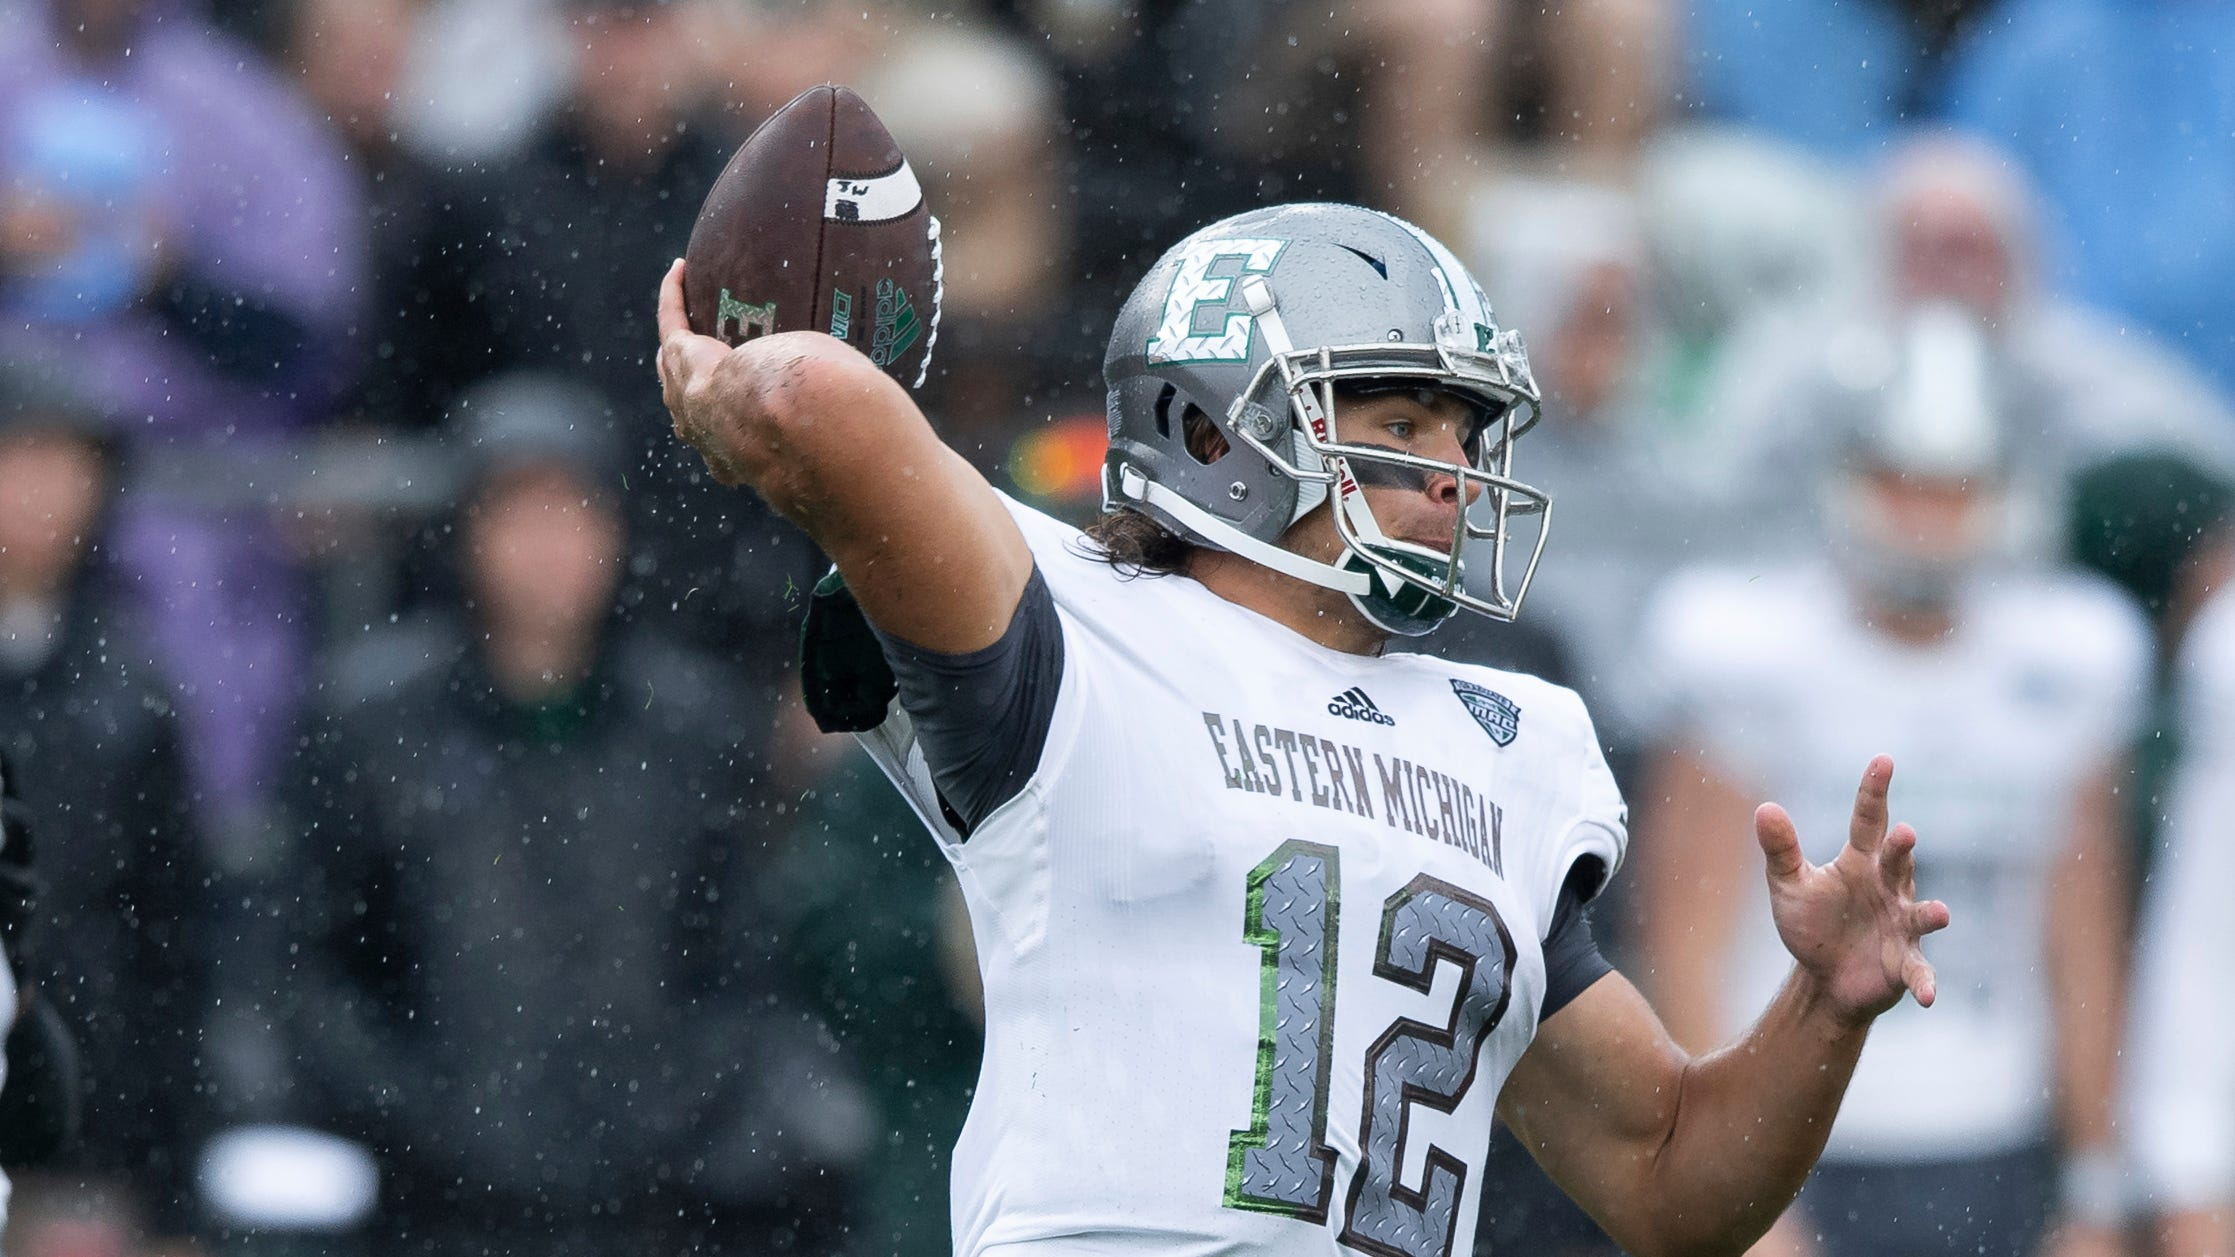 WEST LAFAYETTE, IN - SEPTEMBER 08: Eastern Michigan Eagles quarterback TylerWiegers (12) throws downfield during the college football game between the Purdue Boilermakers and Eastern Michigan Eagles on September 8, 2018, at Ross-Ade Stadium in West Lafayette, IN. (Photo by Zach Bolinger/Icon Sportswire) (Icon Sportswire via AP Images)